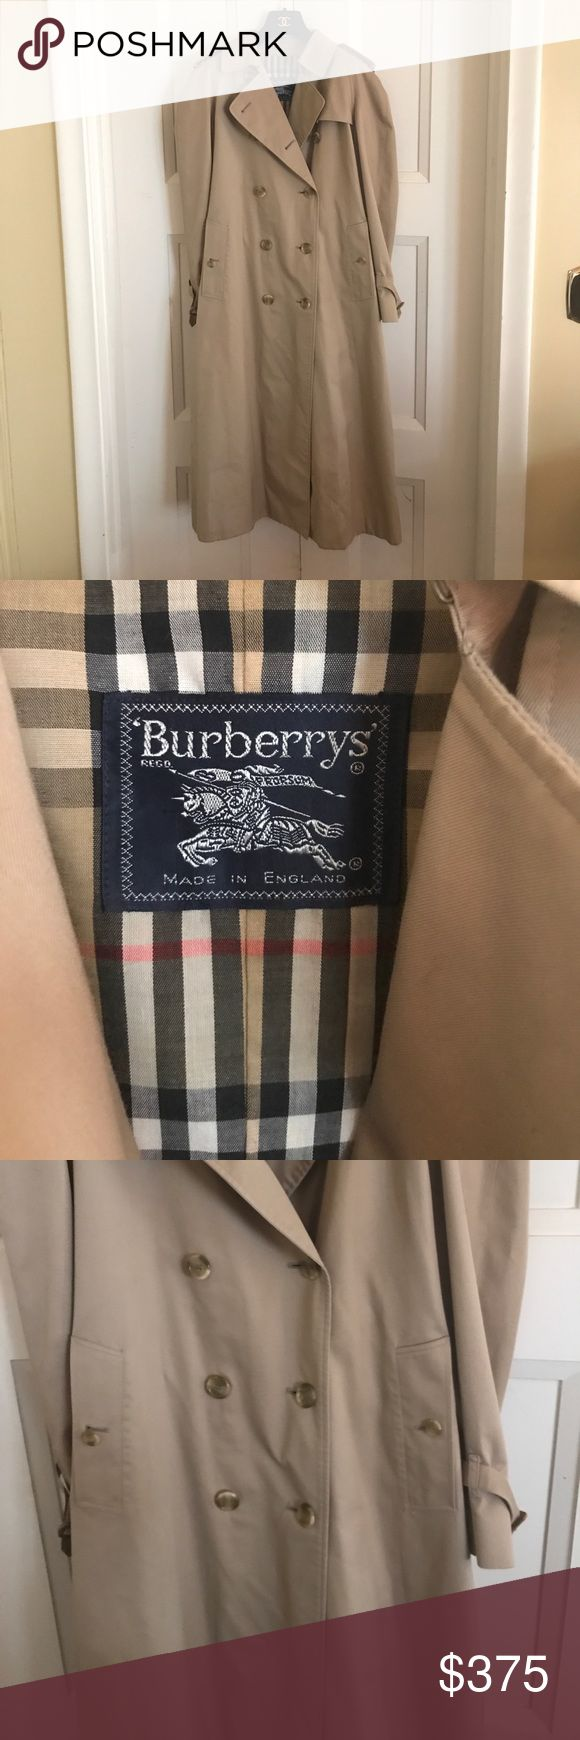 Burberry authentic classic kaki trench coach M Burberry authentic classic kaki trench coach size M in really good condition worn very few times. Serious buyers only please - ask questions or for more detailed specific photos, numbers, measurements etc. negotiable price wise within reason. Make an offer! Burberry Jackets & Coats Trench Coats